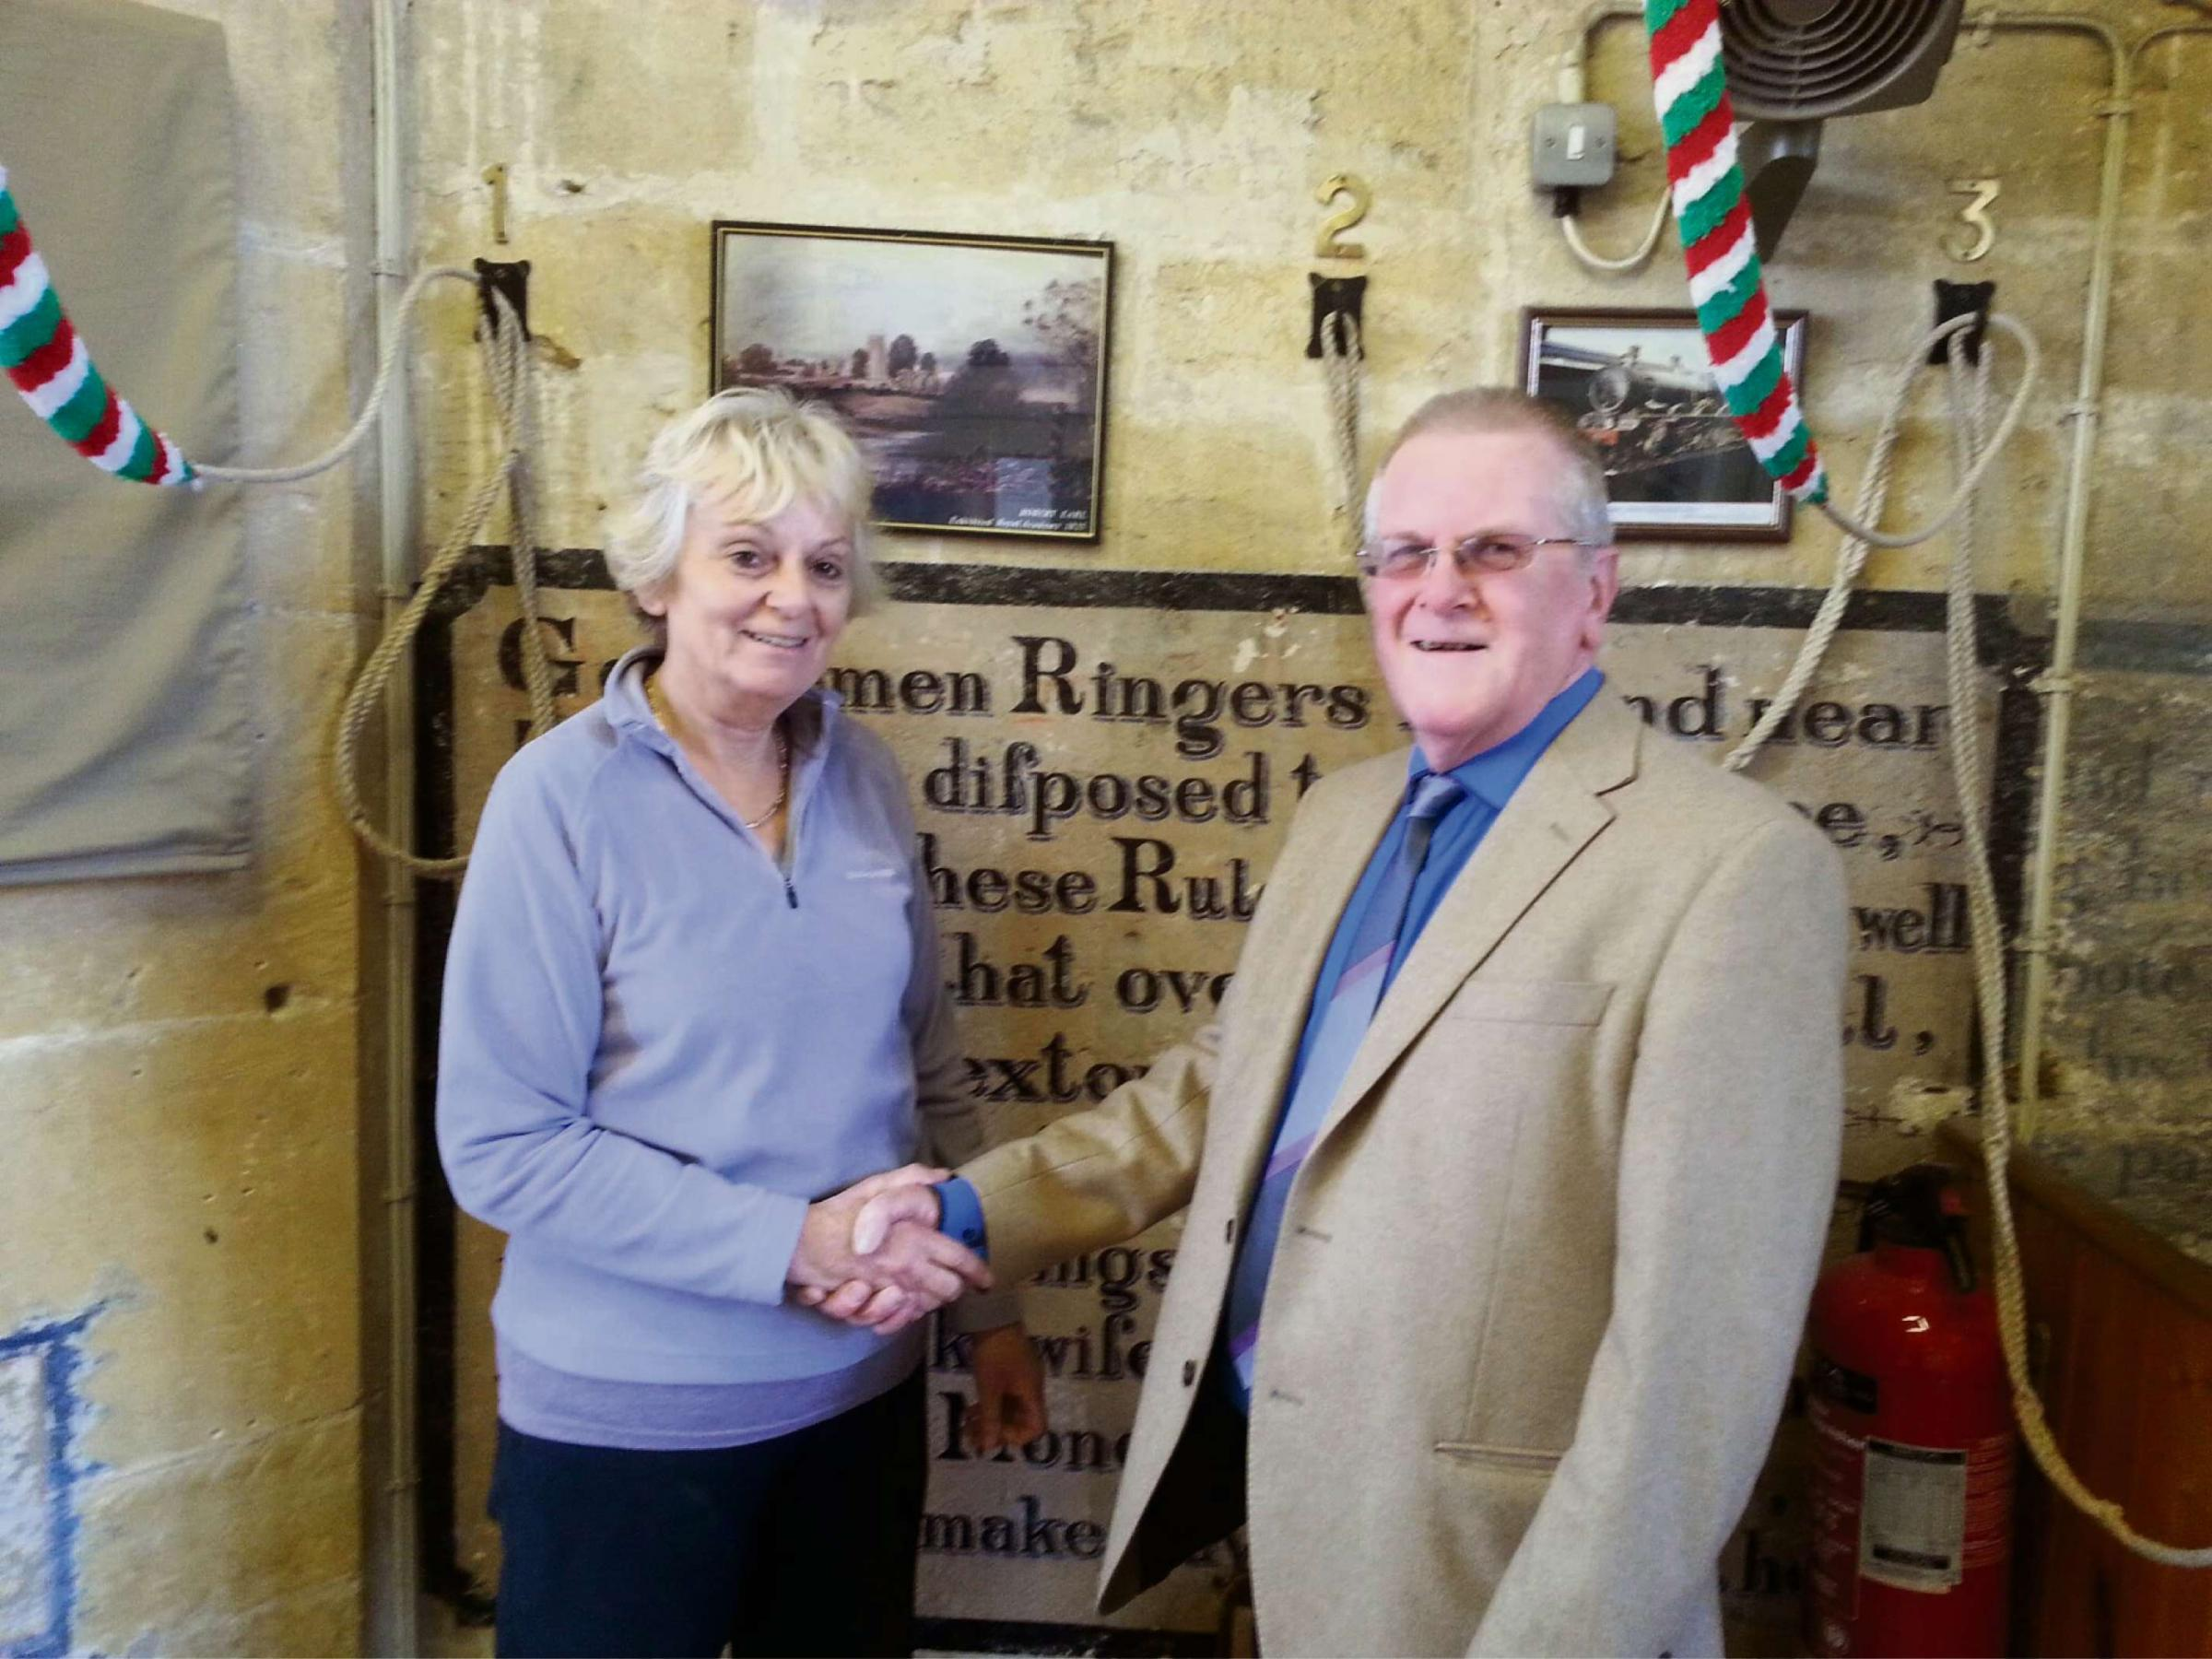 Sue Ablett shaking hands with John Kyte, the chairman of the Vale of Evesham Historical Society.